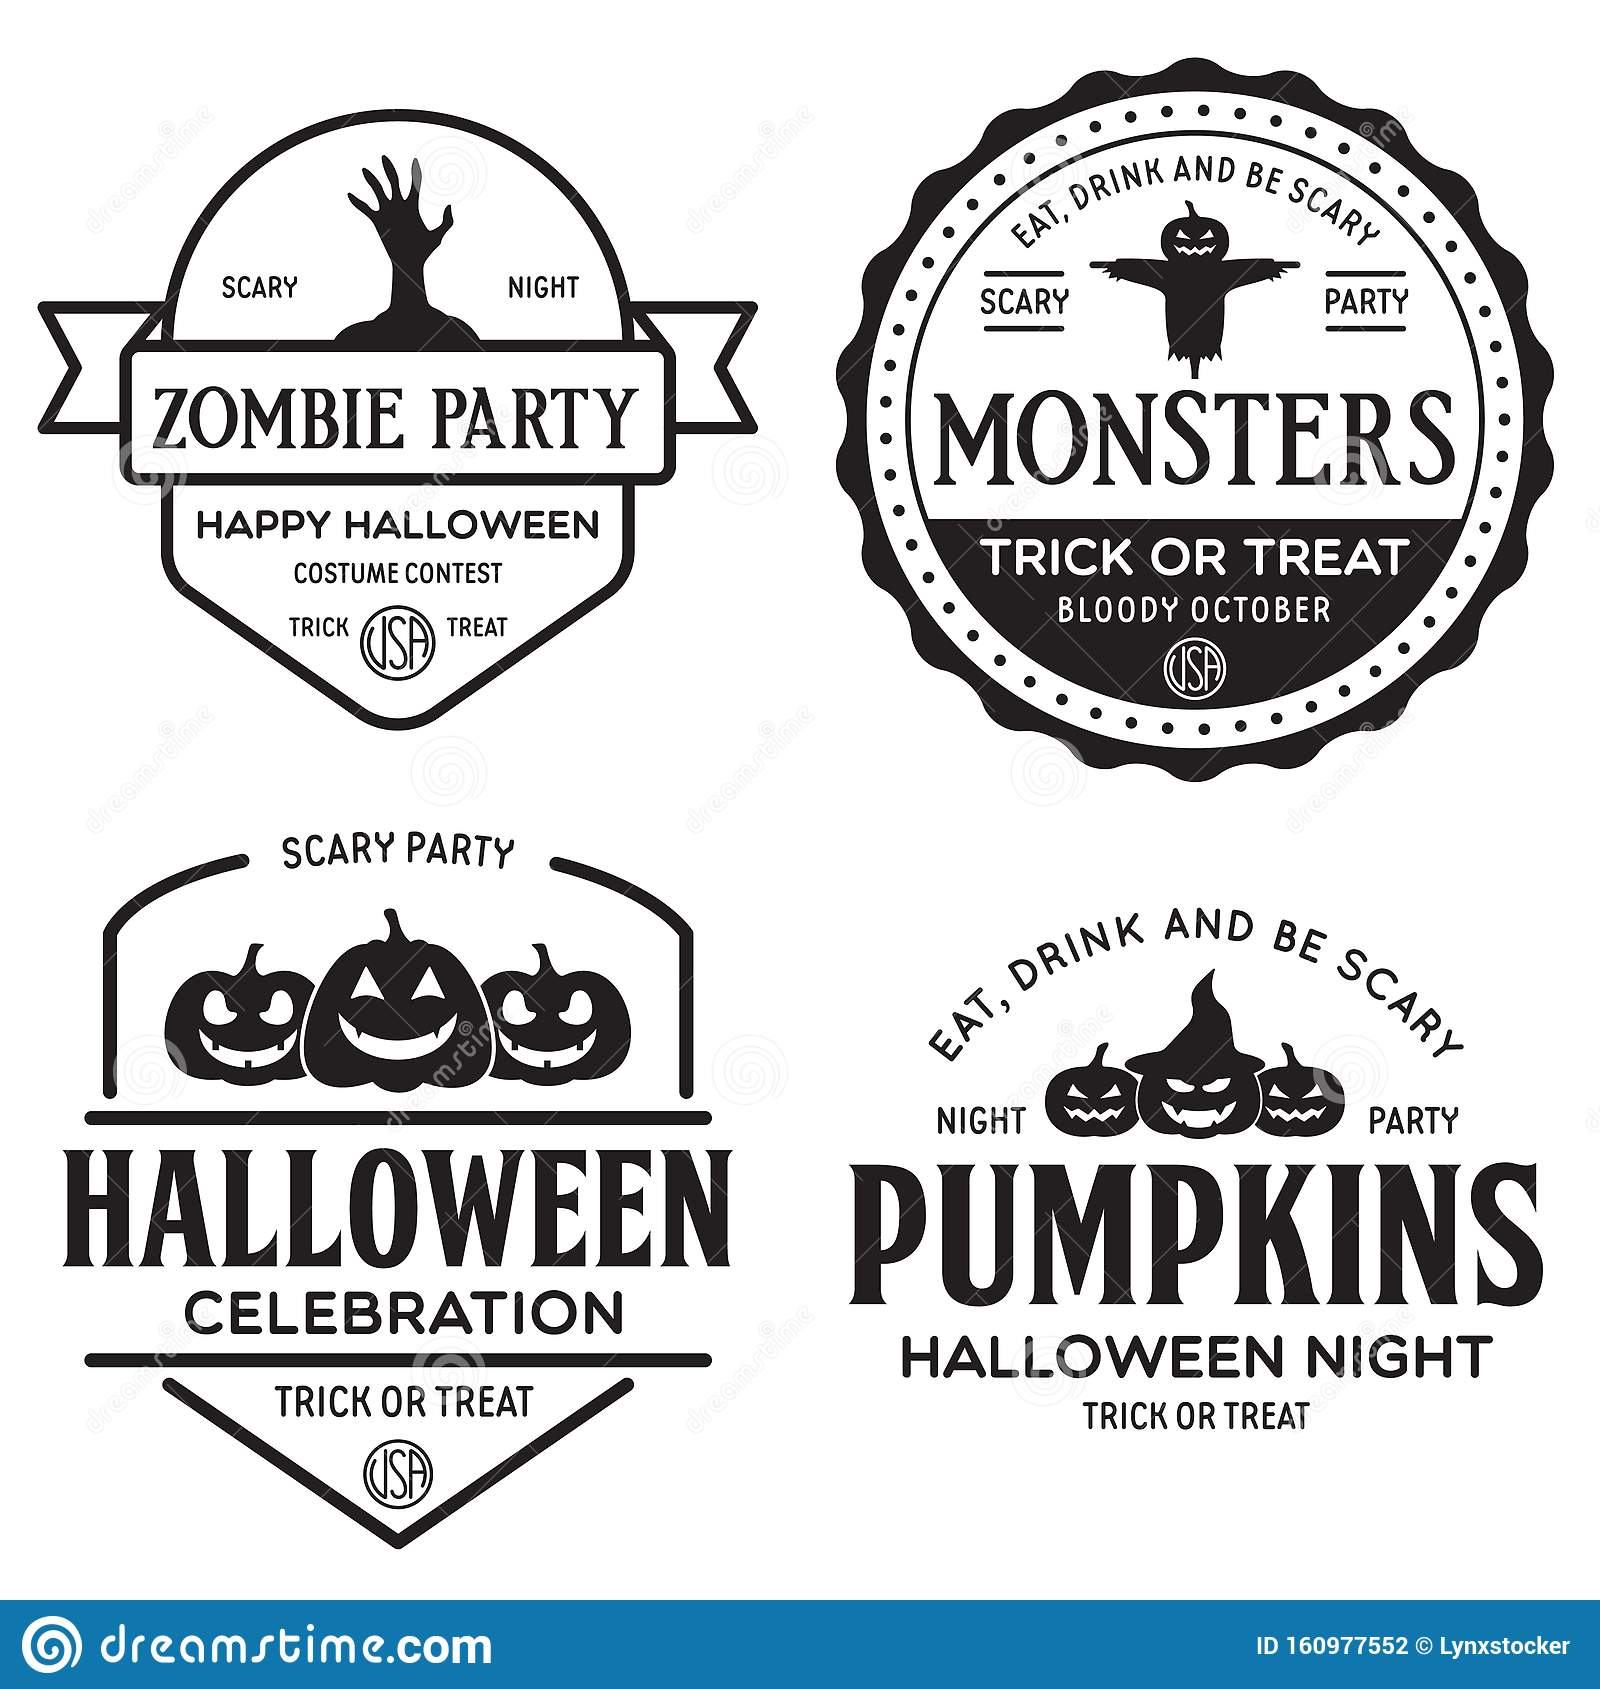 Trick or Treat-Vintage Style Tags Halloween Tags